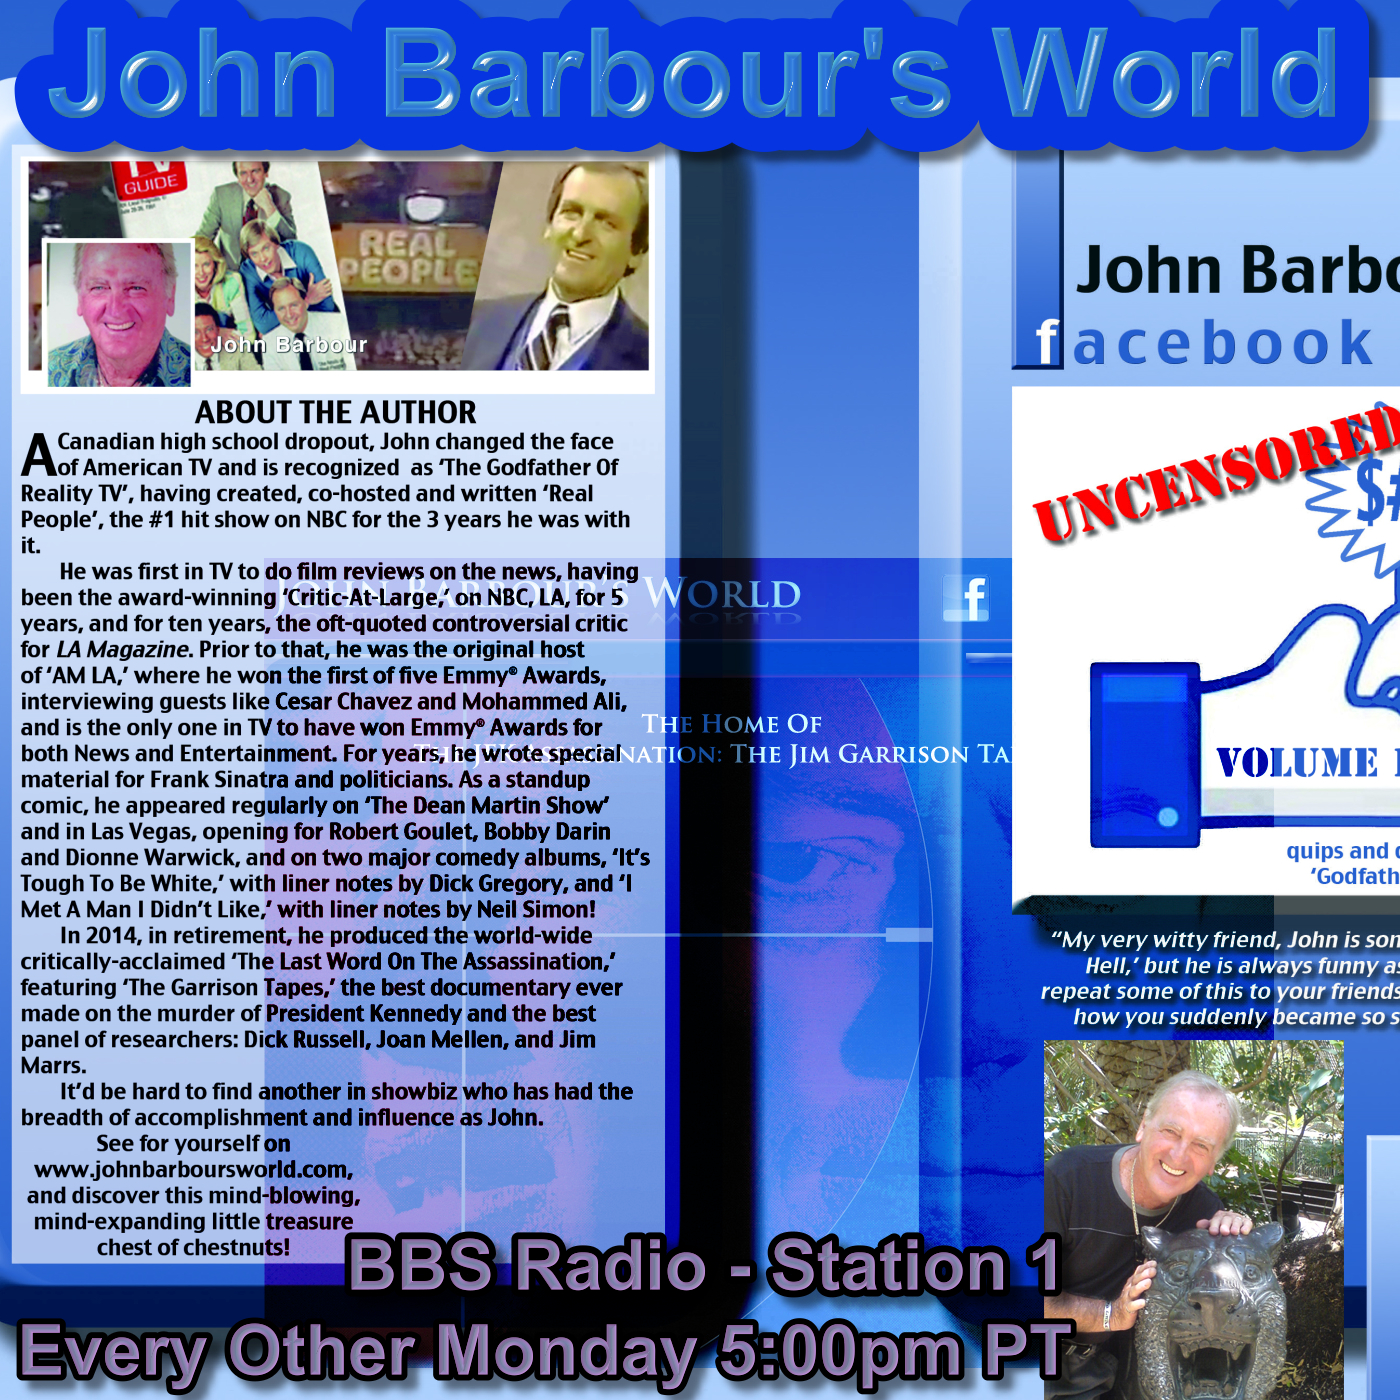 John Barbours World with John Barbour